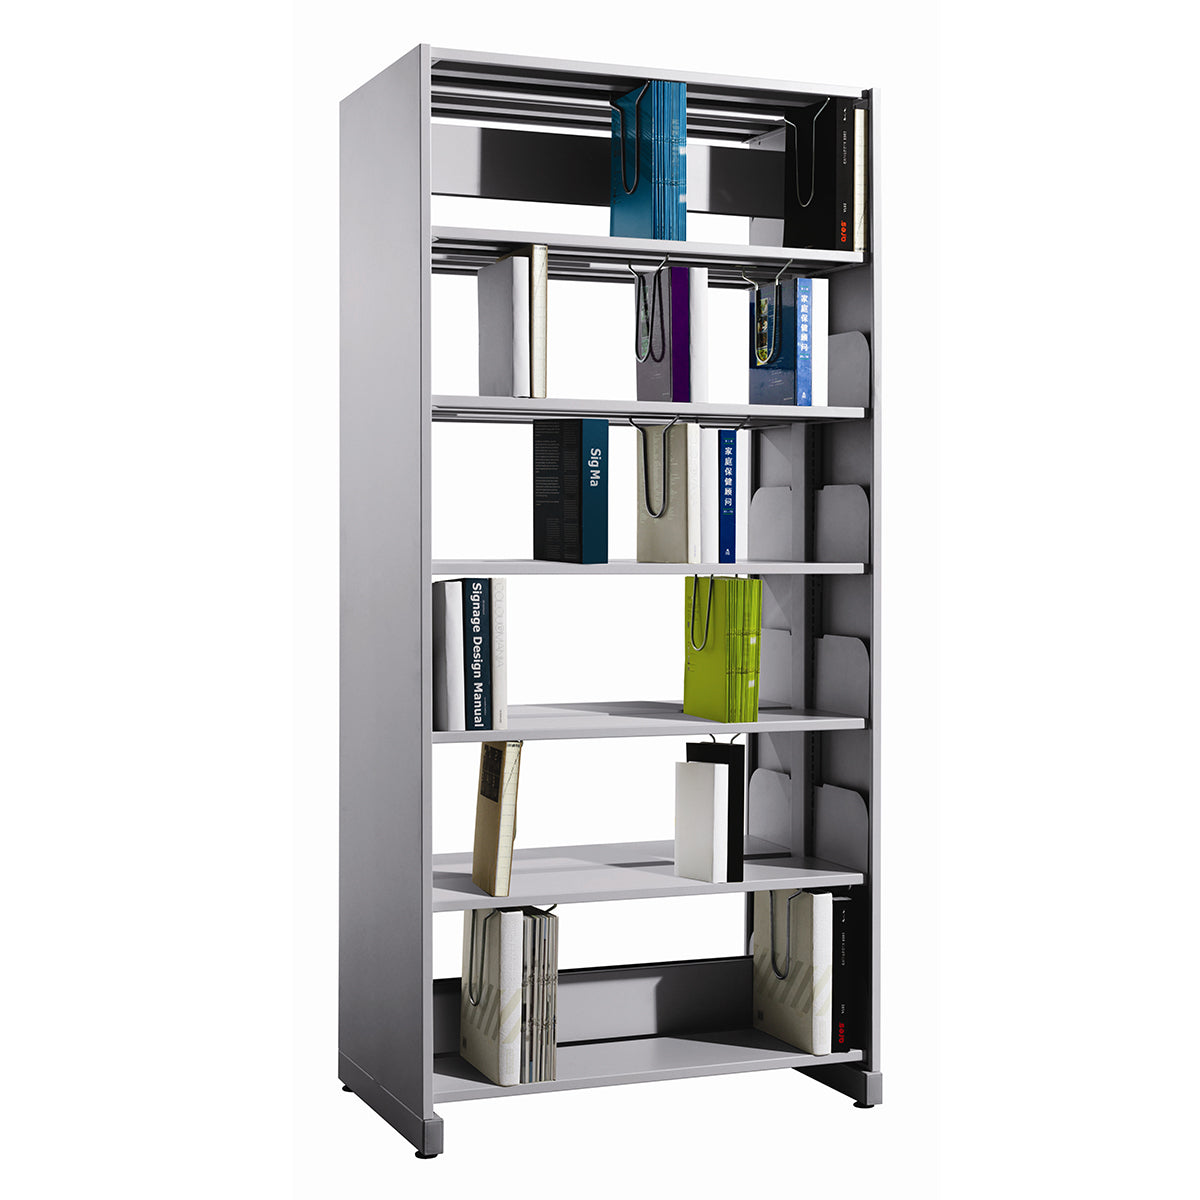 MS LIBRARY 2 SIDED BOOKRACK